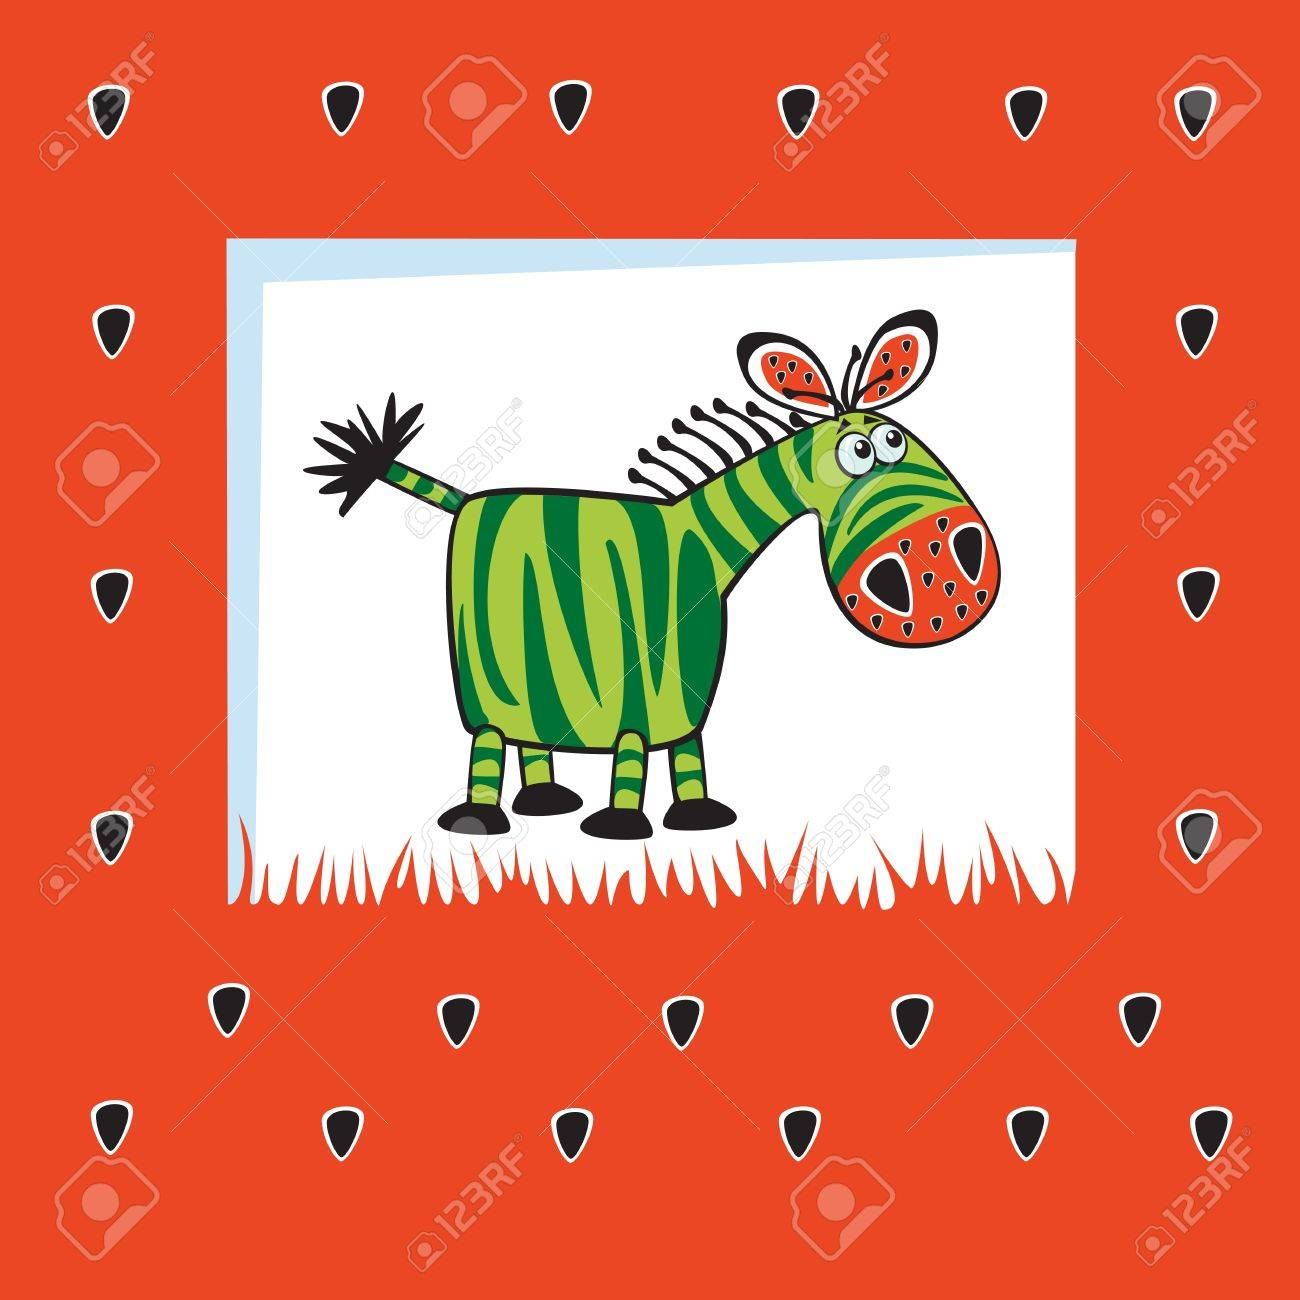 Cute Fruity Zebra Like Watermelon Children Vector Illustration Royalty Free Cliparts Vectors And Stock Illustration Image 15260562